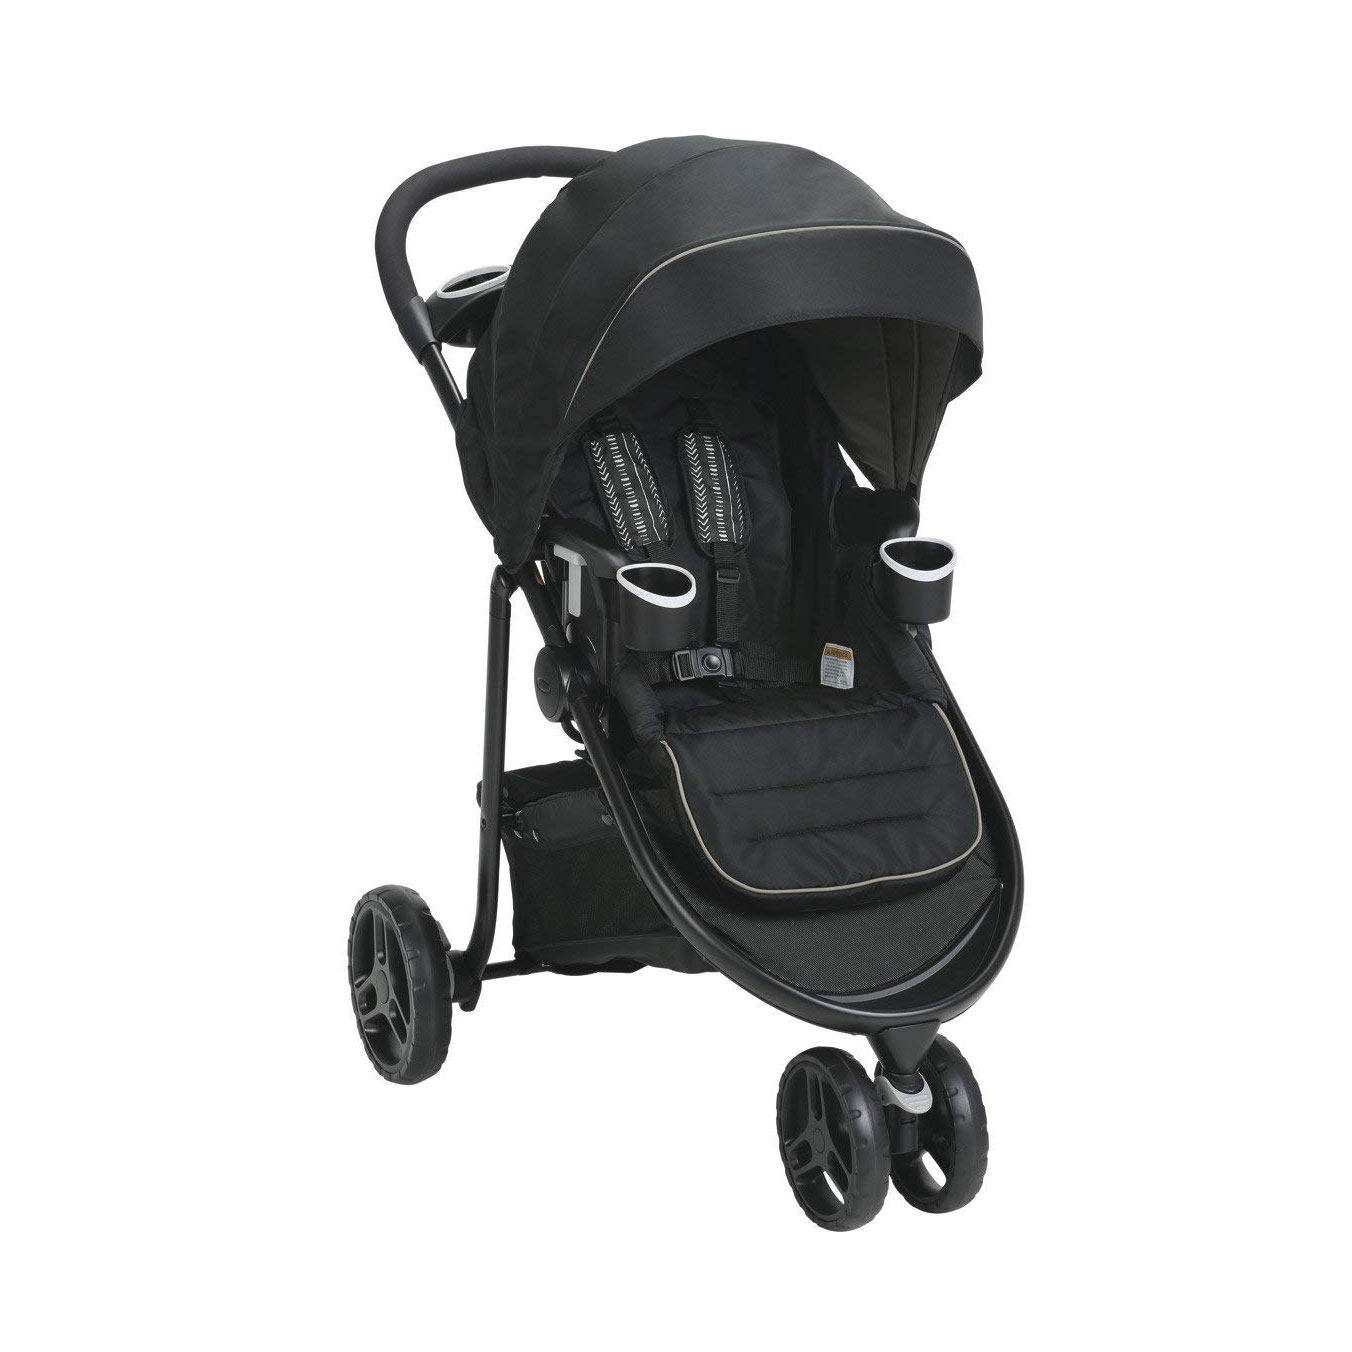 Details About Graco Modes 3 Lite Click Connect Infant To Toddler Convertible Baby Stroller